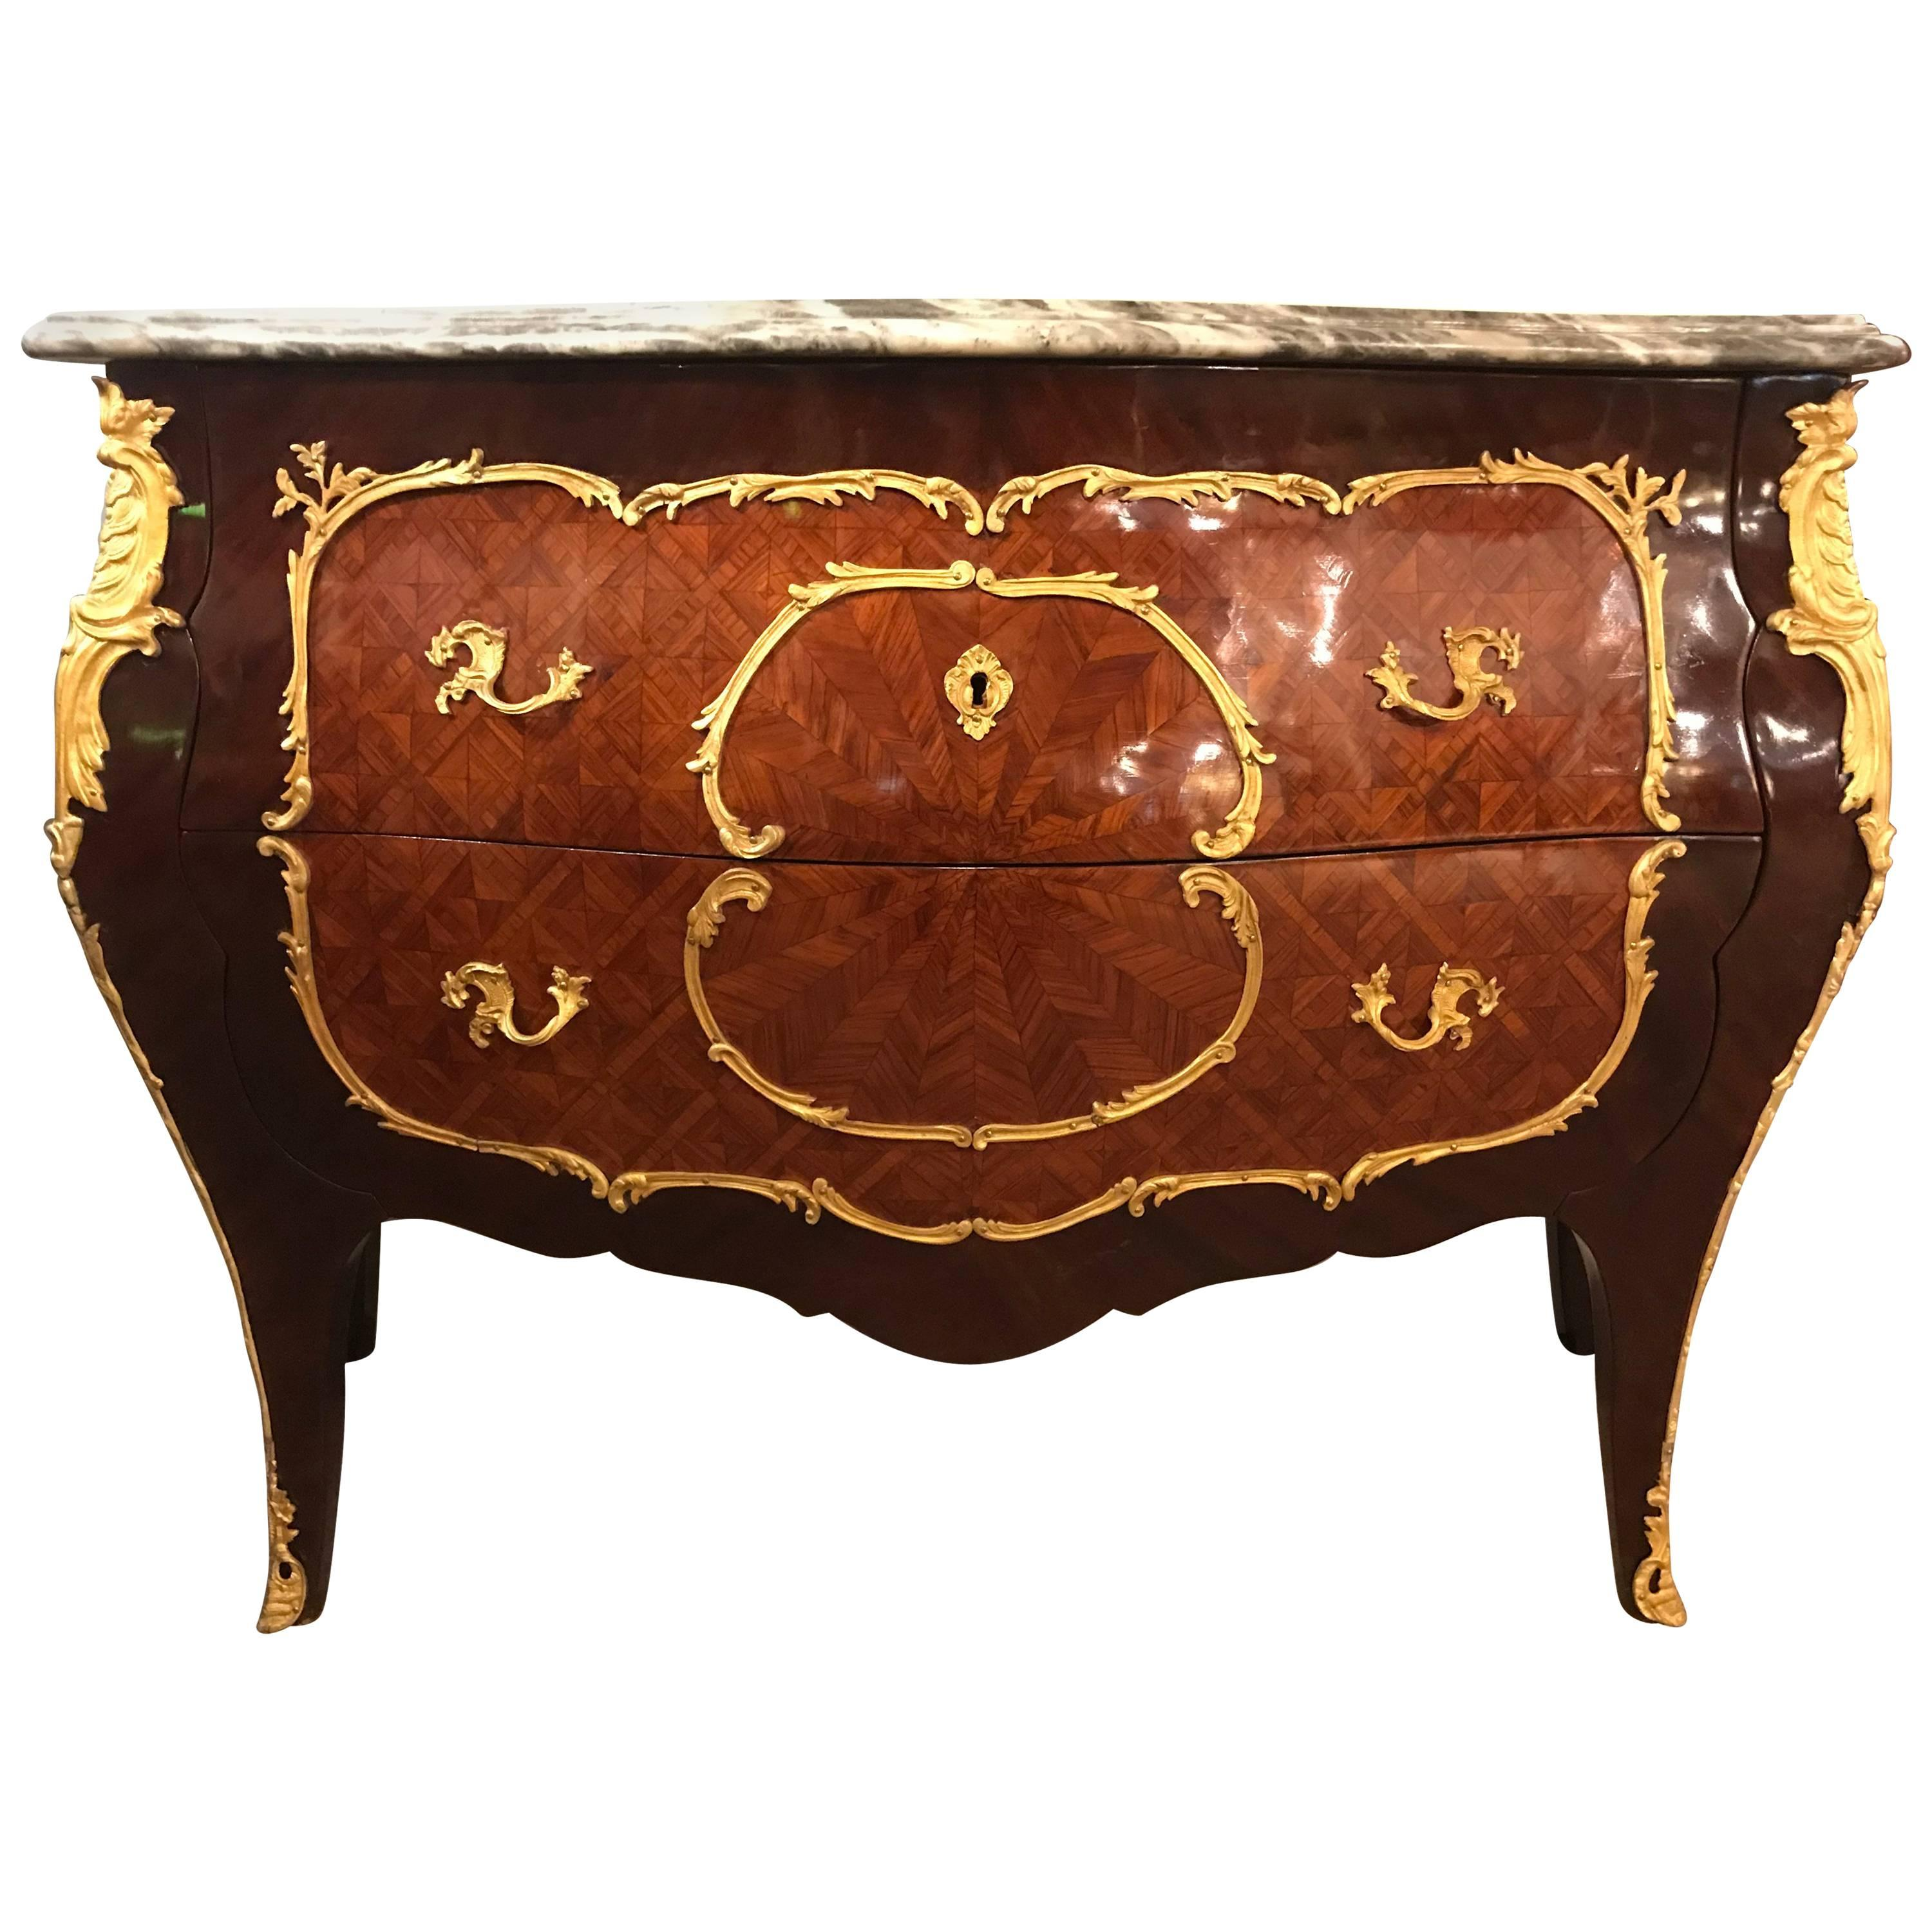 Vintage Bombe Parquetry Bronze-Mounted Commode with Ogee Marble Top